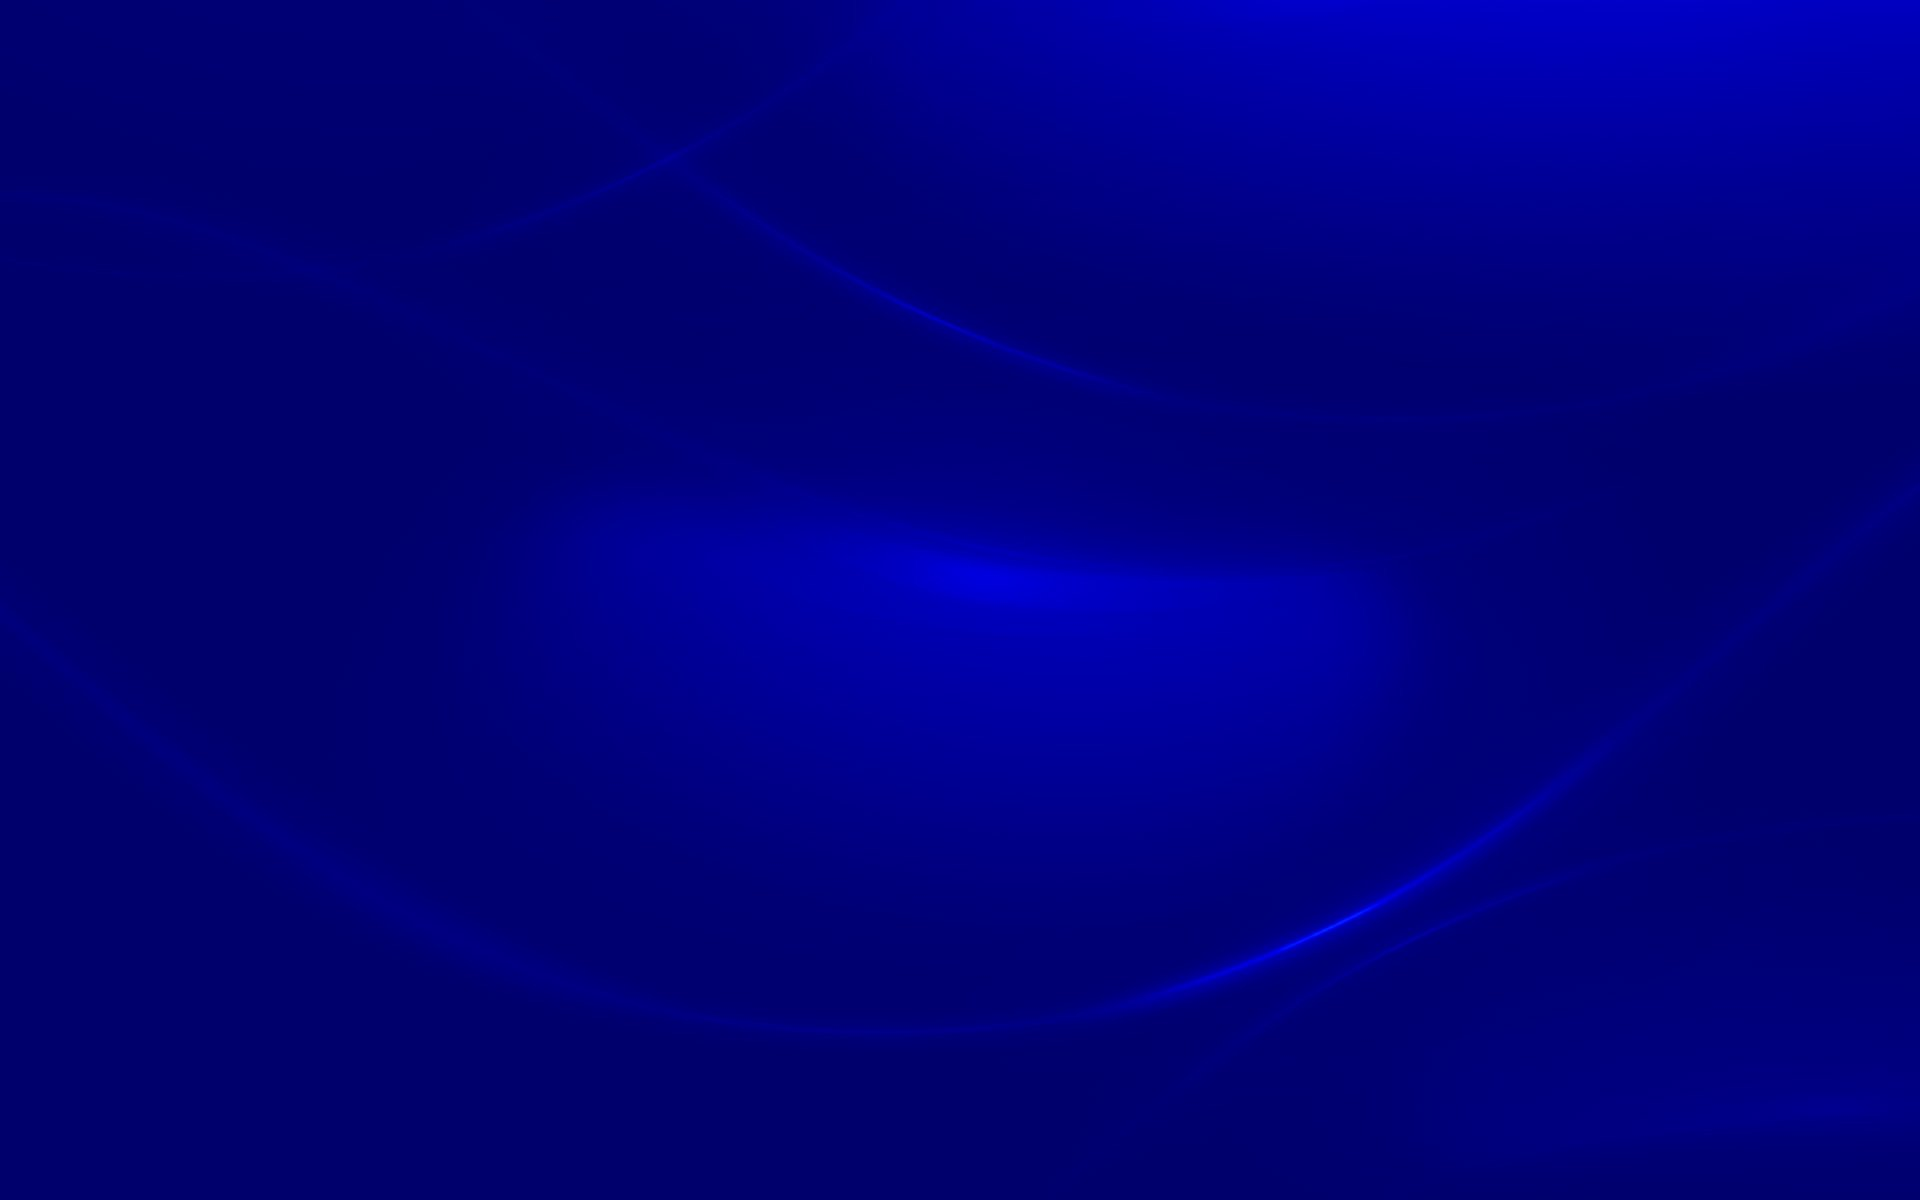 windows blue wallpaper - sf wallpaper